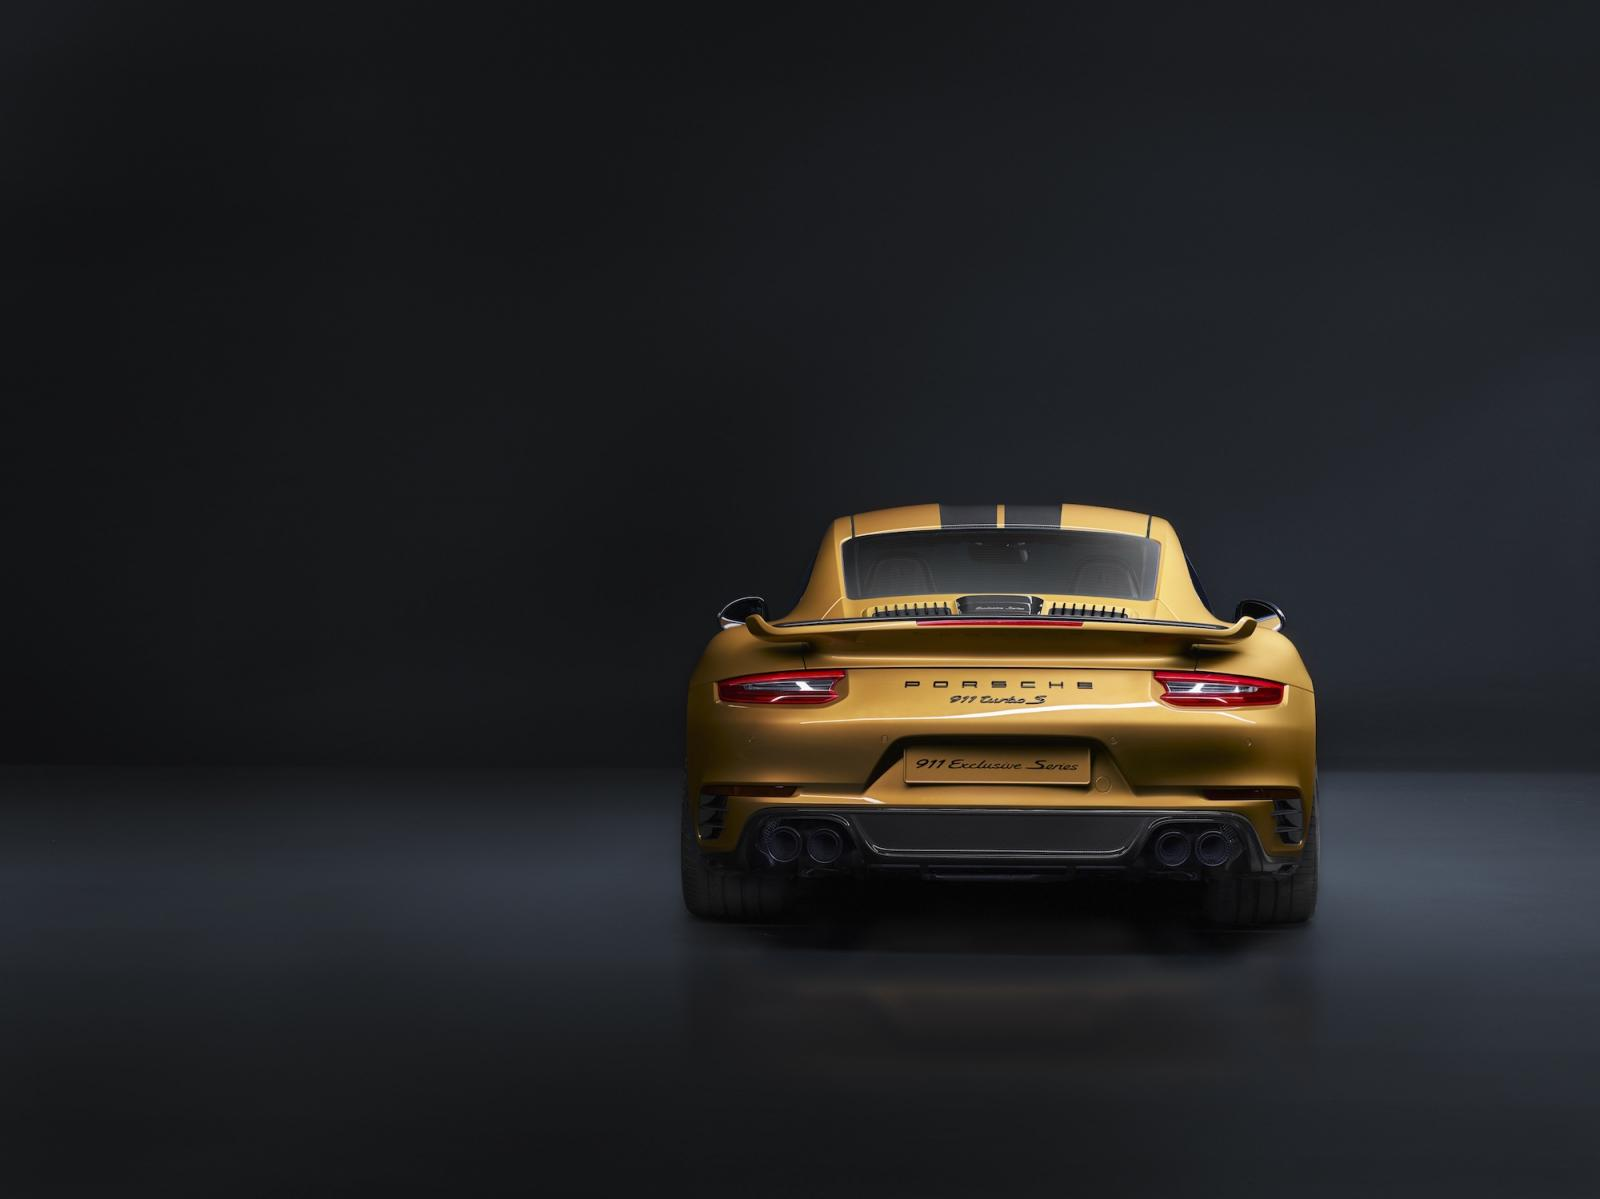 porsche-991-turbo-s-exclusive-series-4